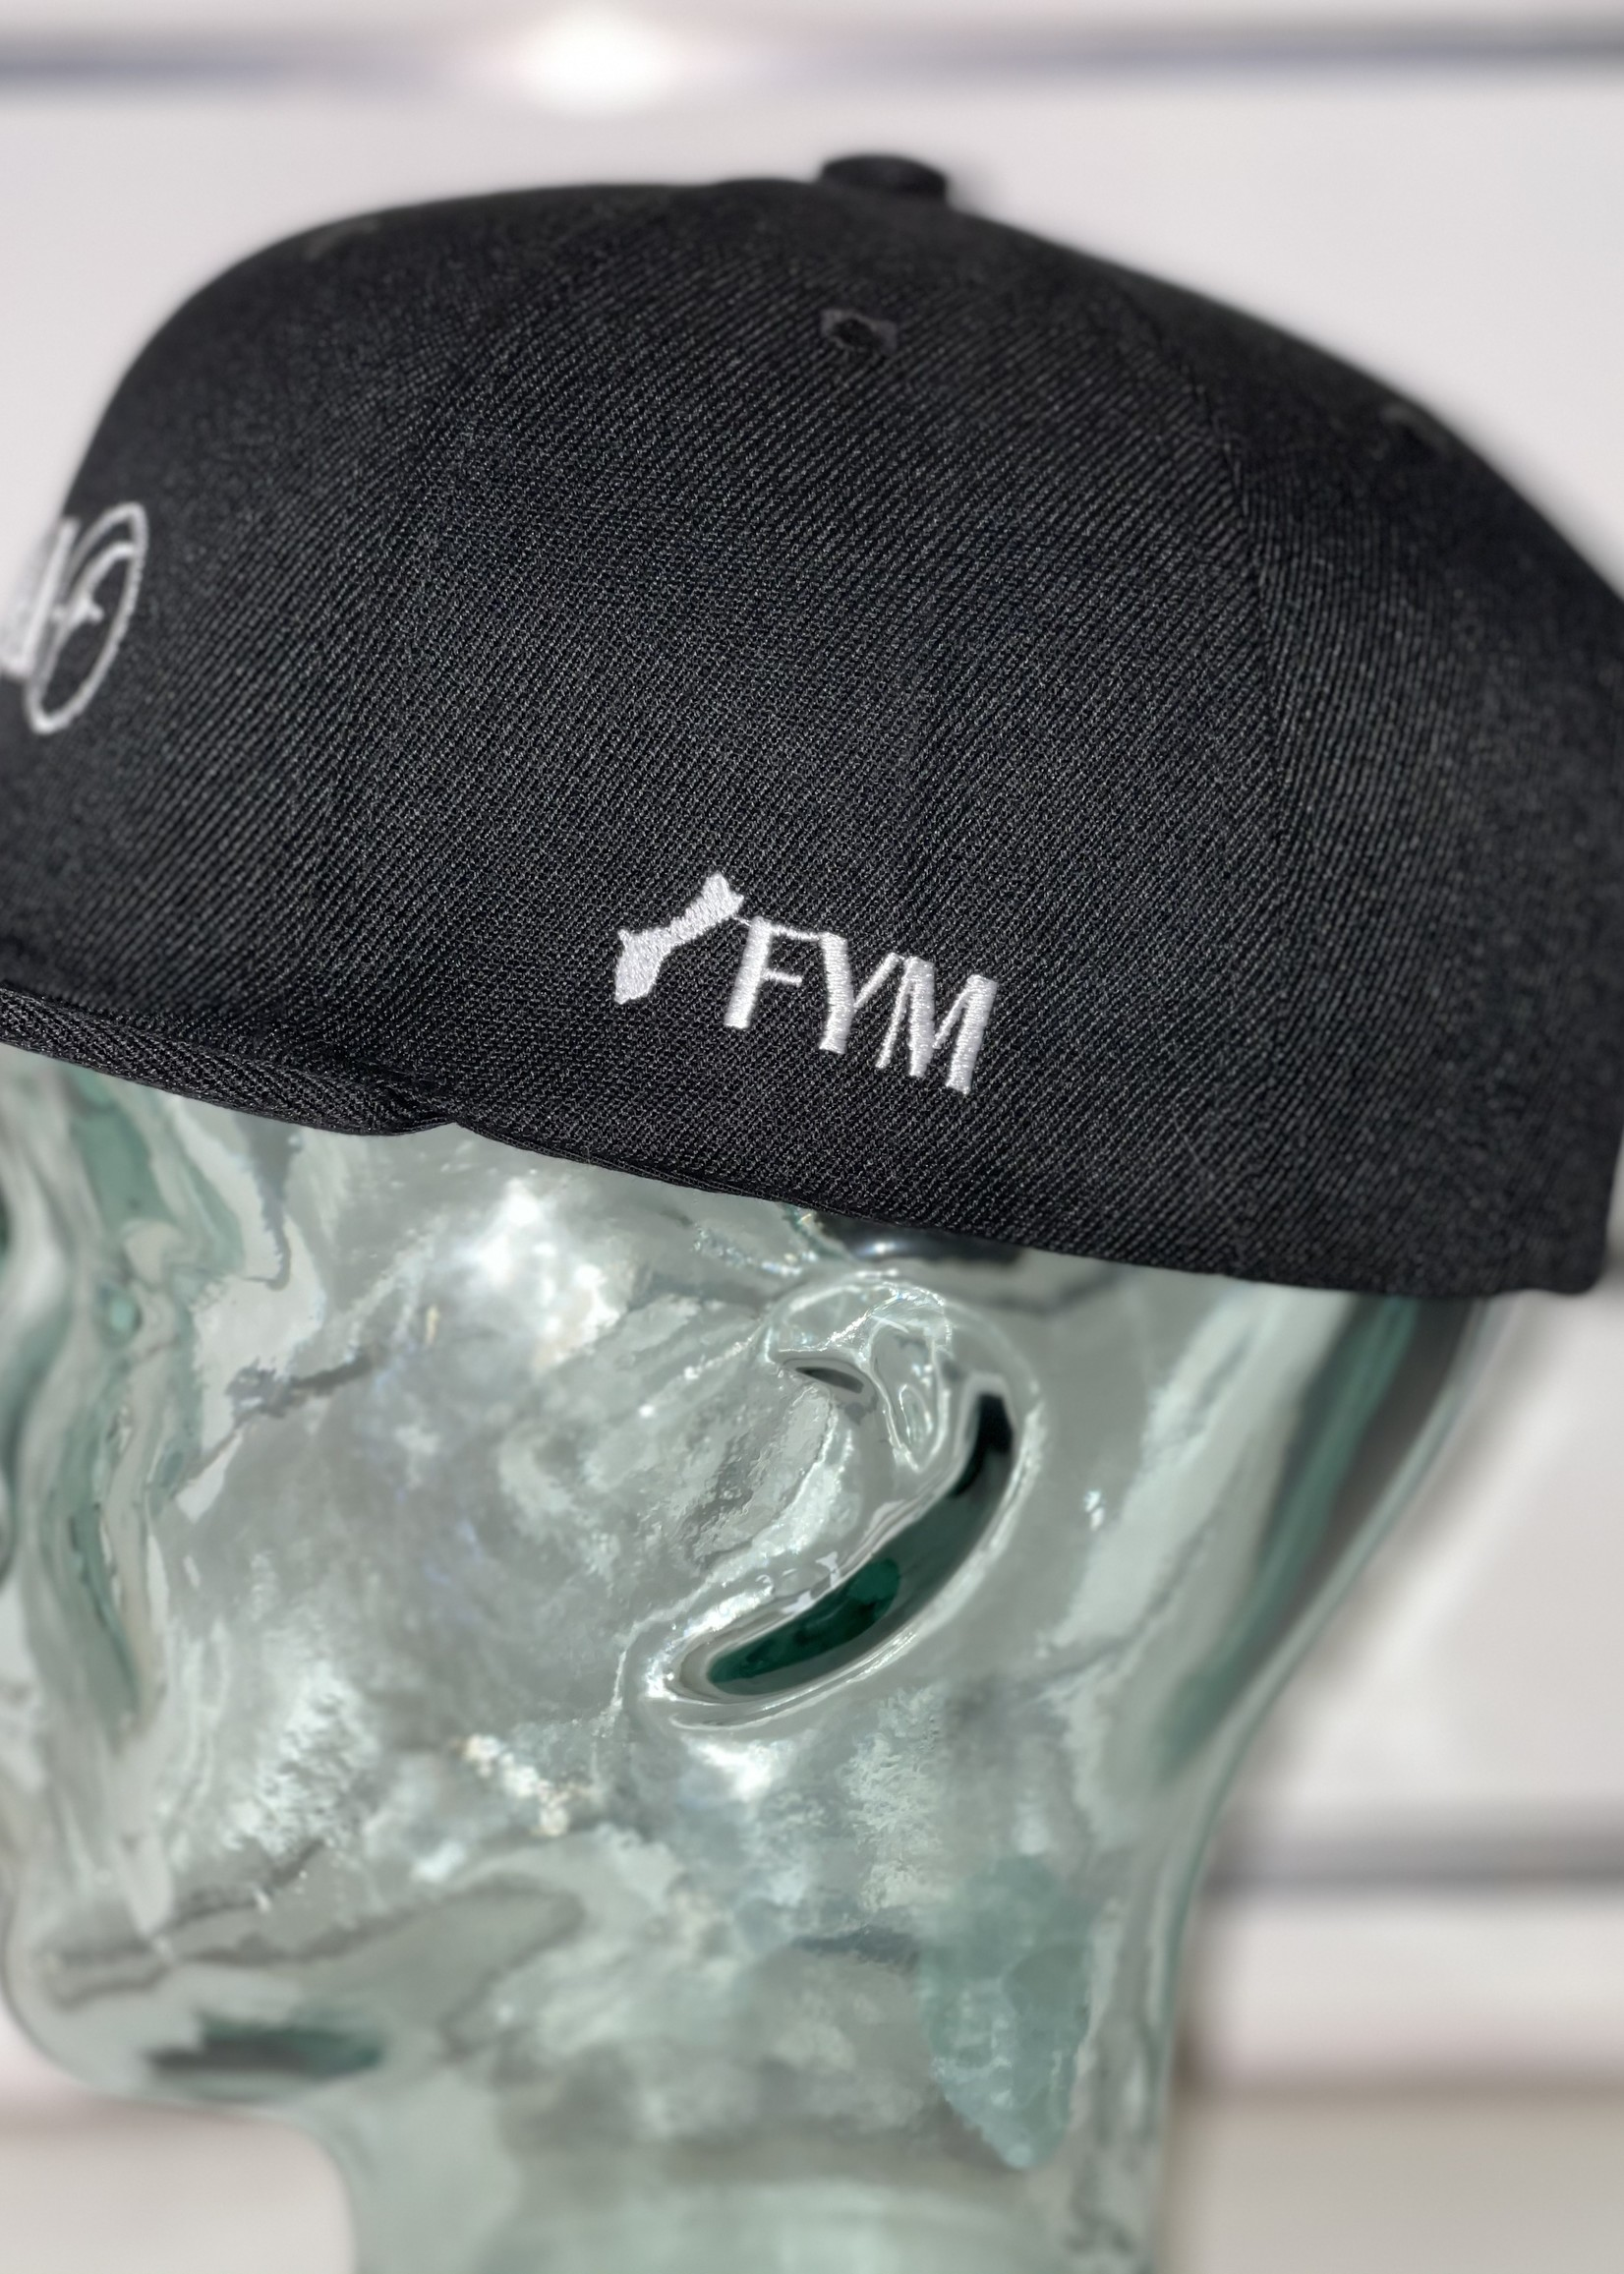 FREE YOUR MIND Free Your Mind Village Hats